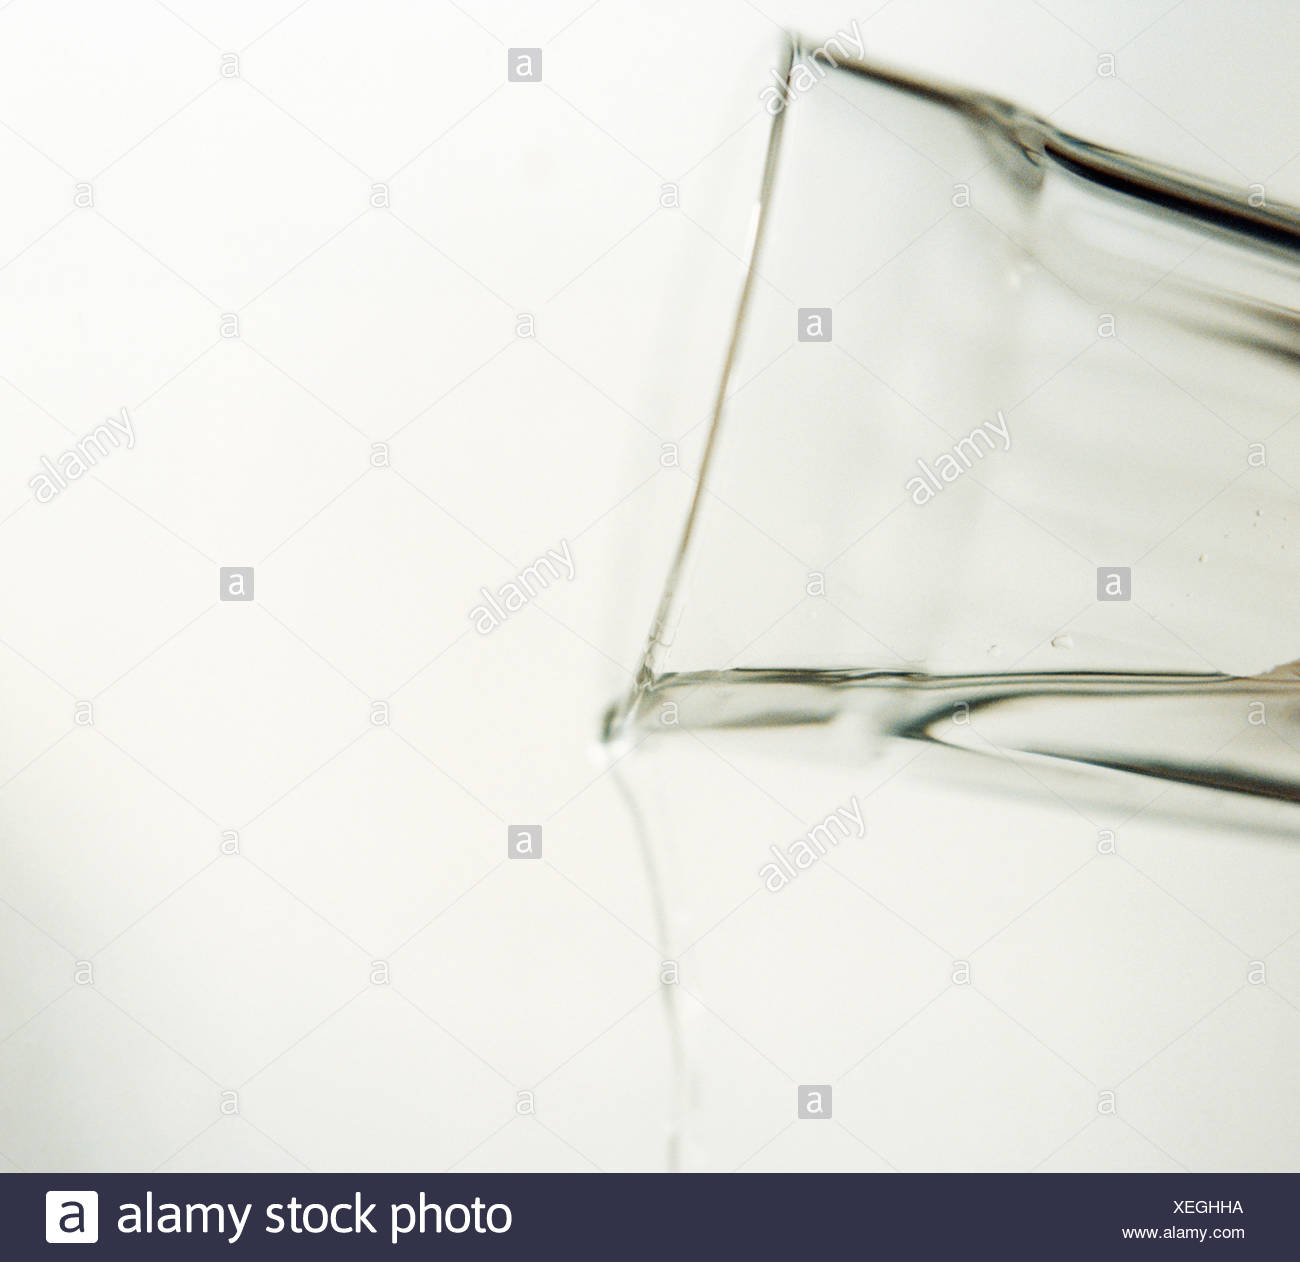 Water being poured out of glass - Stock Image